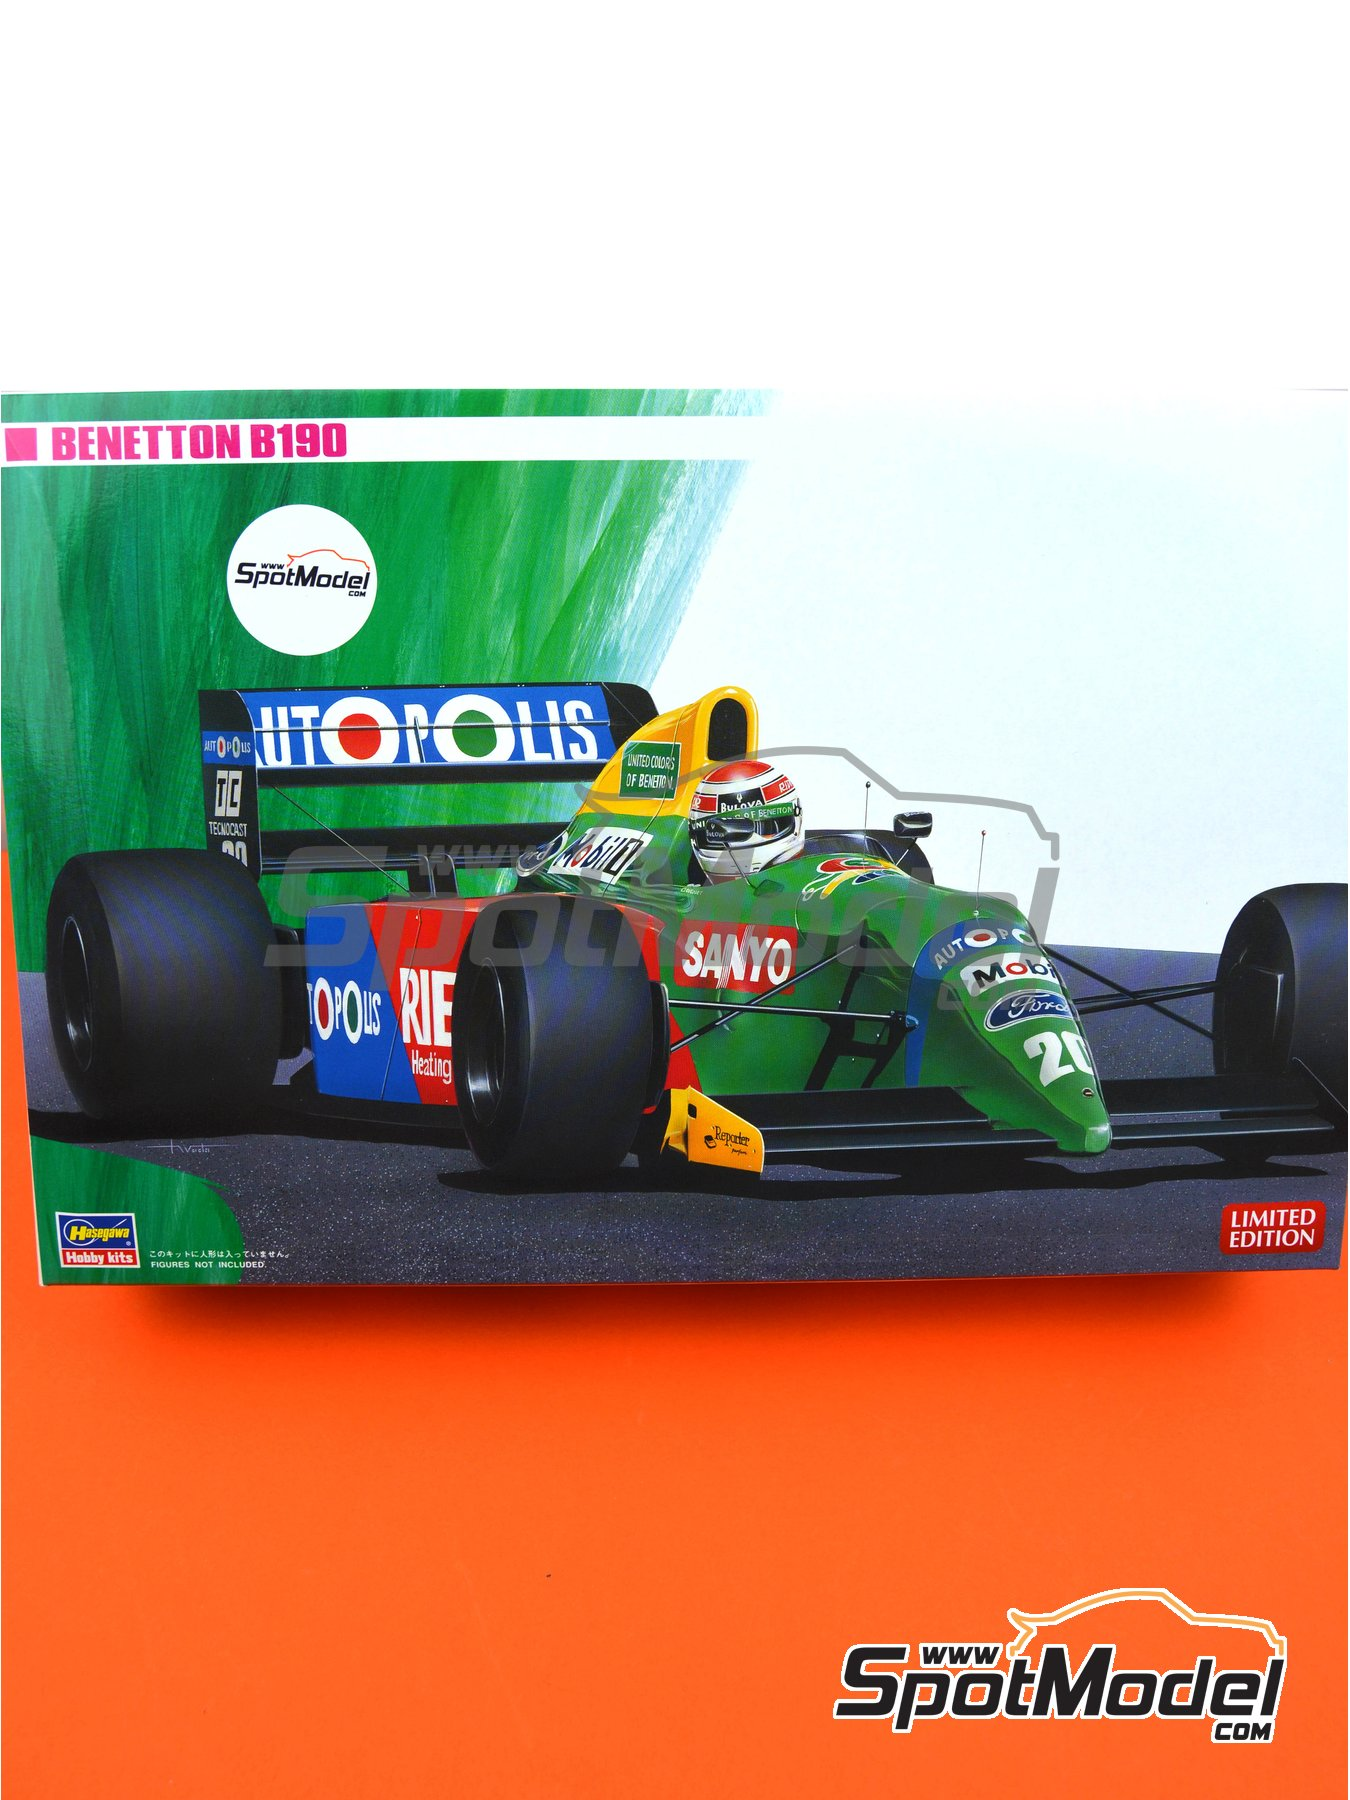 Benetton Ford B190 Autopolis - Japan Grand Prix 1990 | Model car kit in 1/24 scale manufactured by Hasegawa (ref. 20340) image